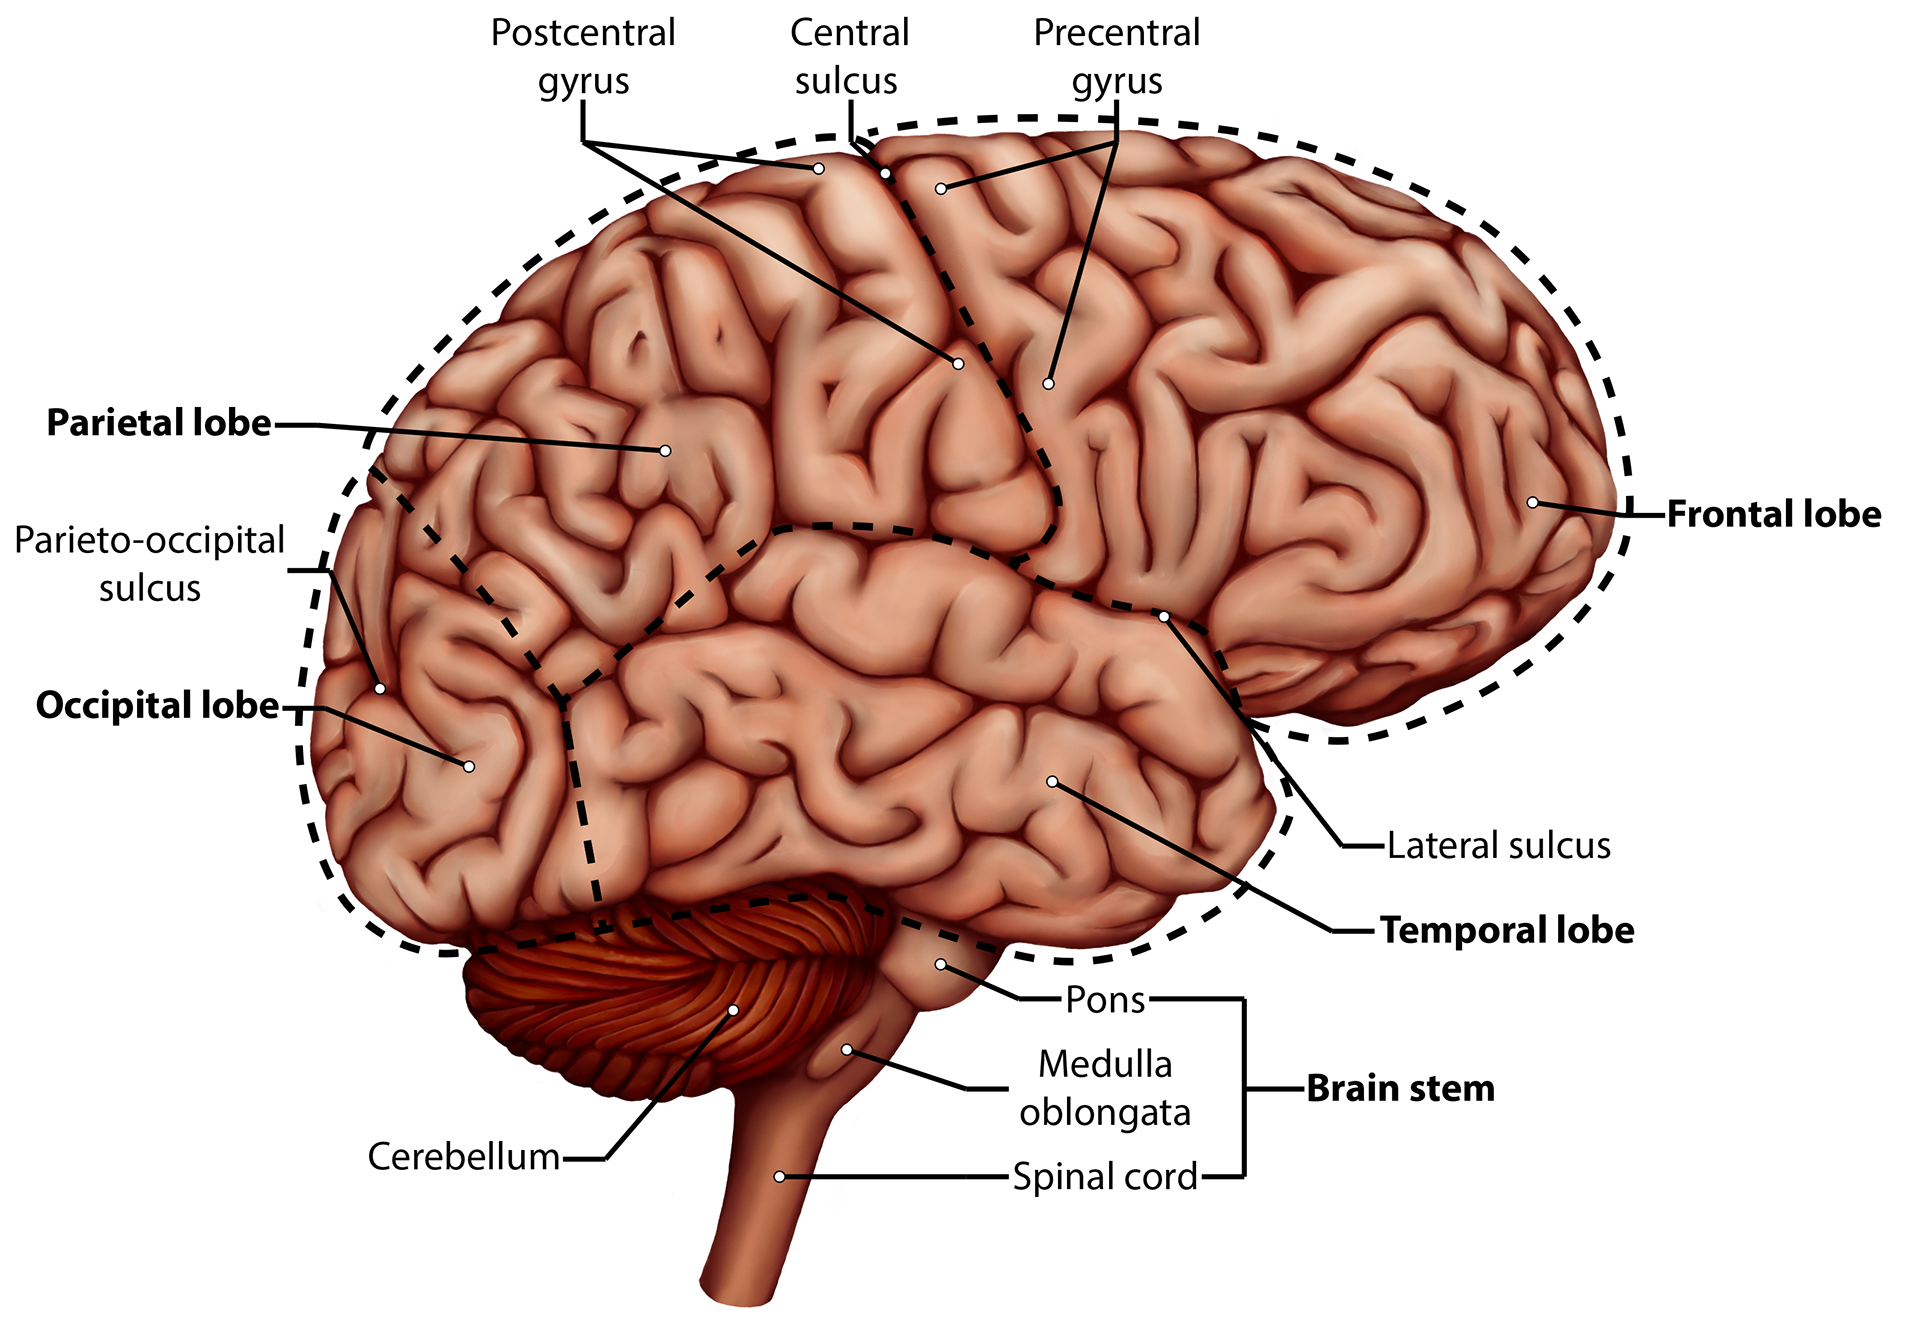 Brittany clark brain side view and sagittal cuts of the human brain and cerebellum with labeled diagrams of all three ccuart Choice Image